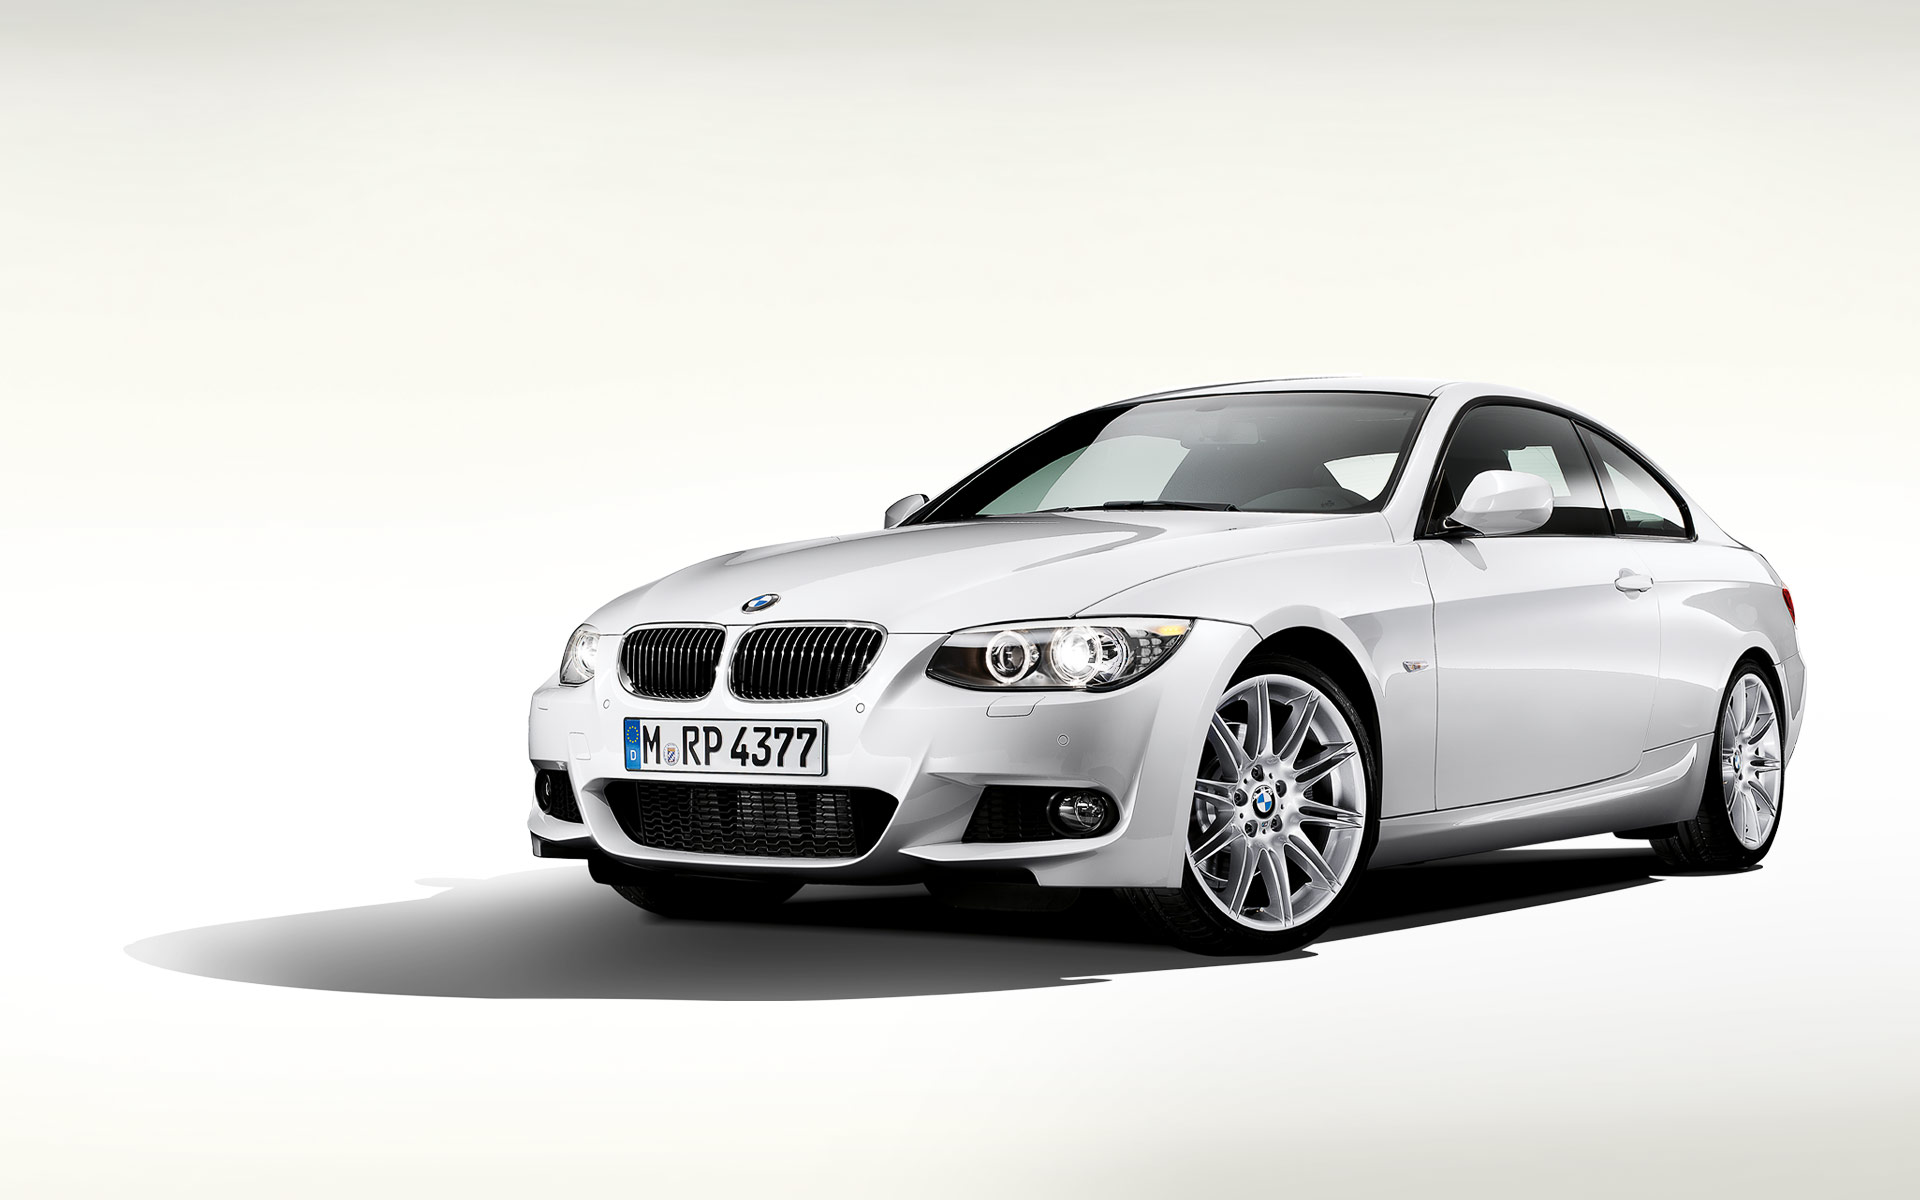 hight resolution of 09 1920x1200 bmw 3series coupe1 655x409